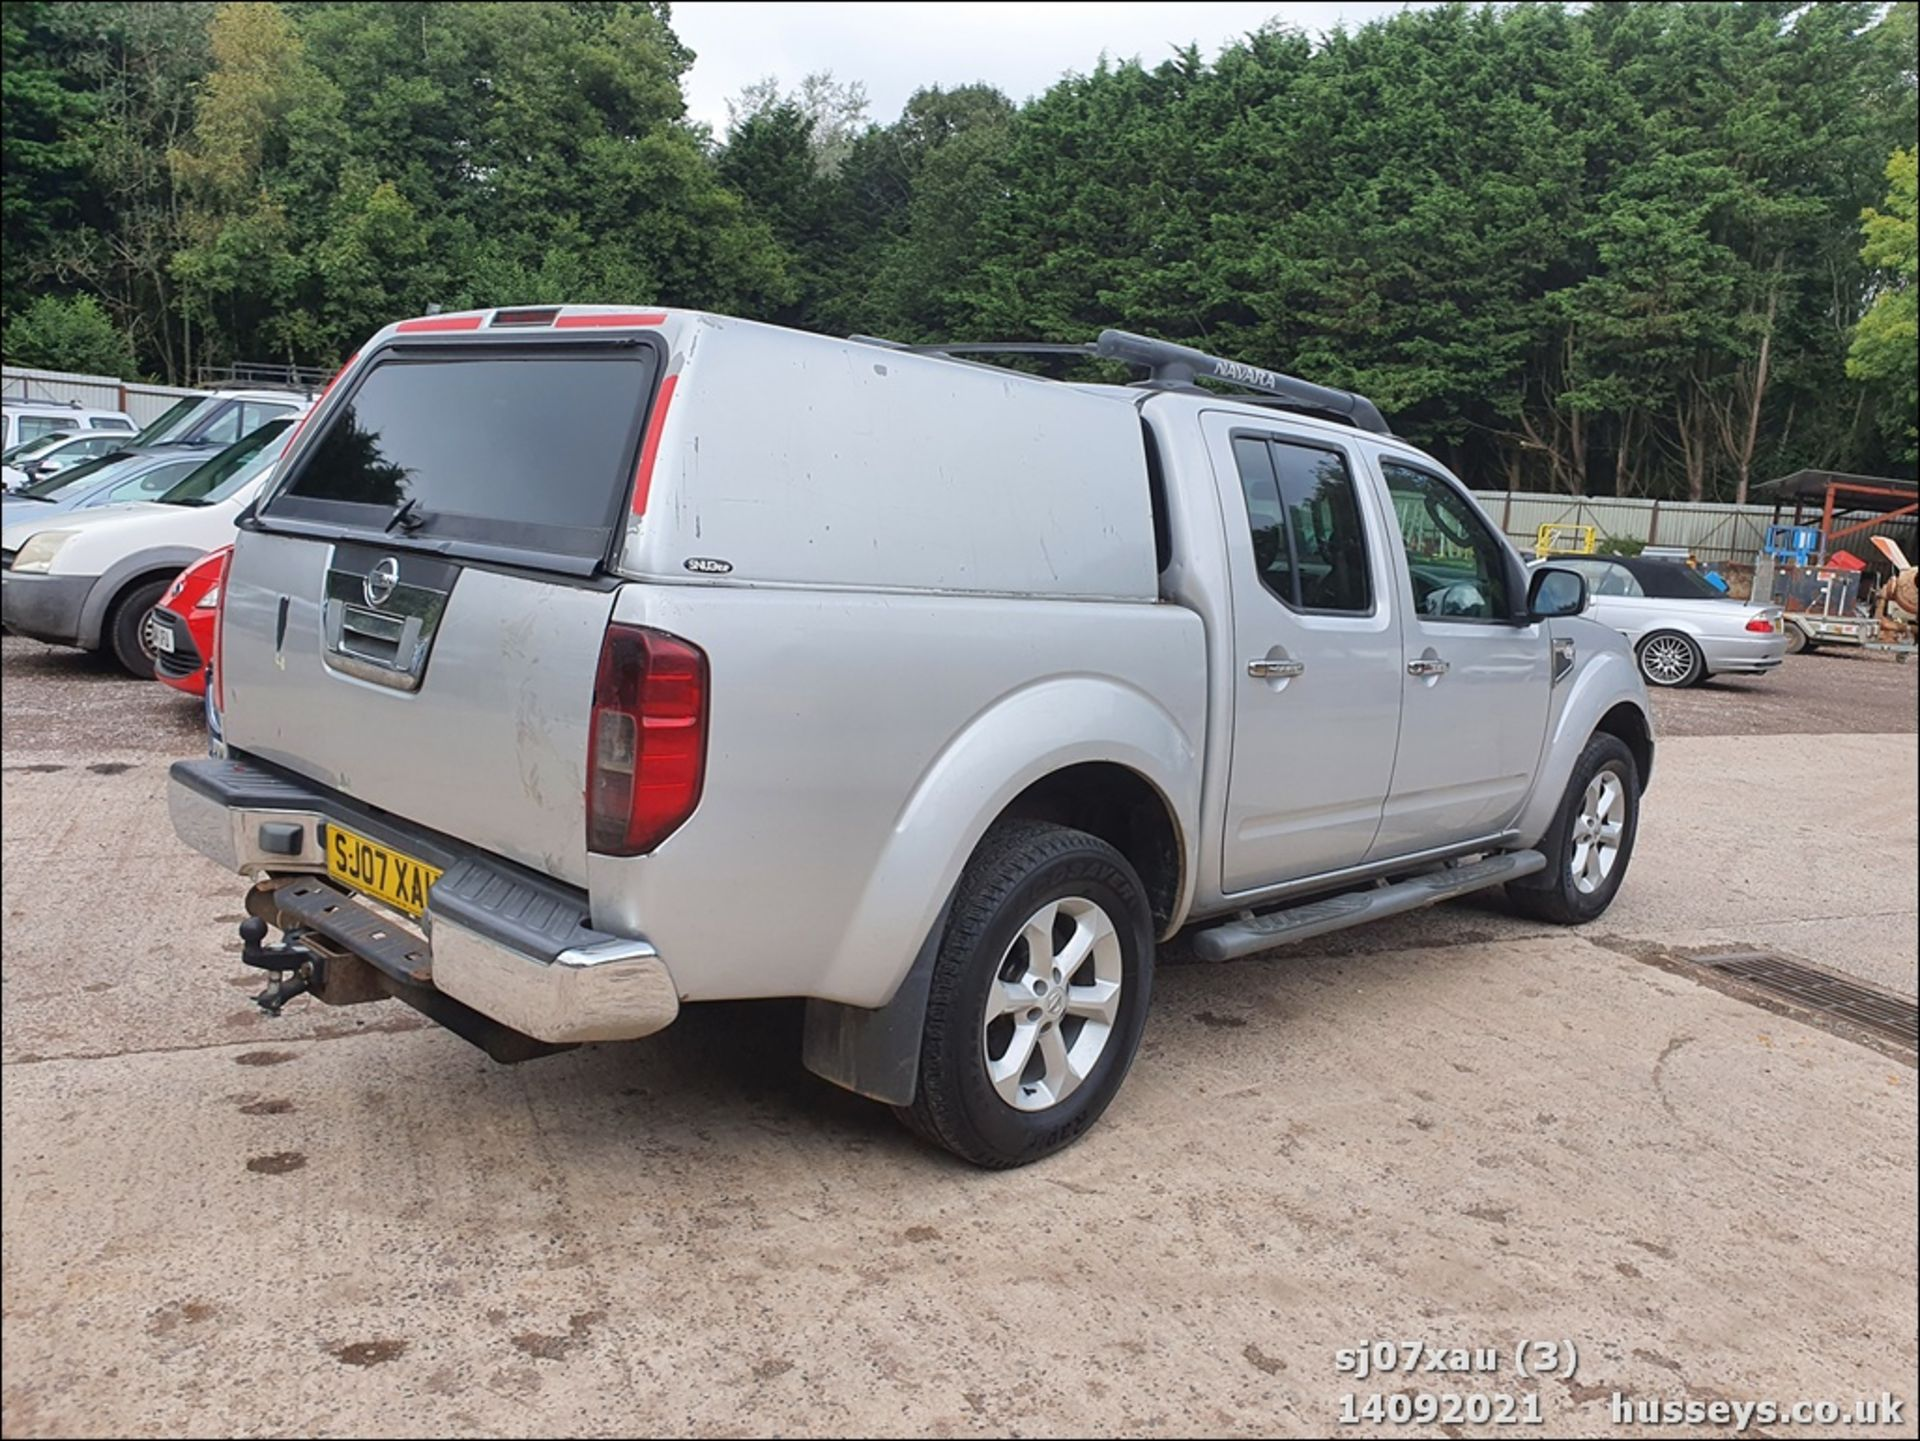 07/07 NISSAN NAVARA D/C OUTLAW DCI - 2488cc 4dr 4x4 (Silver, 166k) - Image 3 of 15